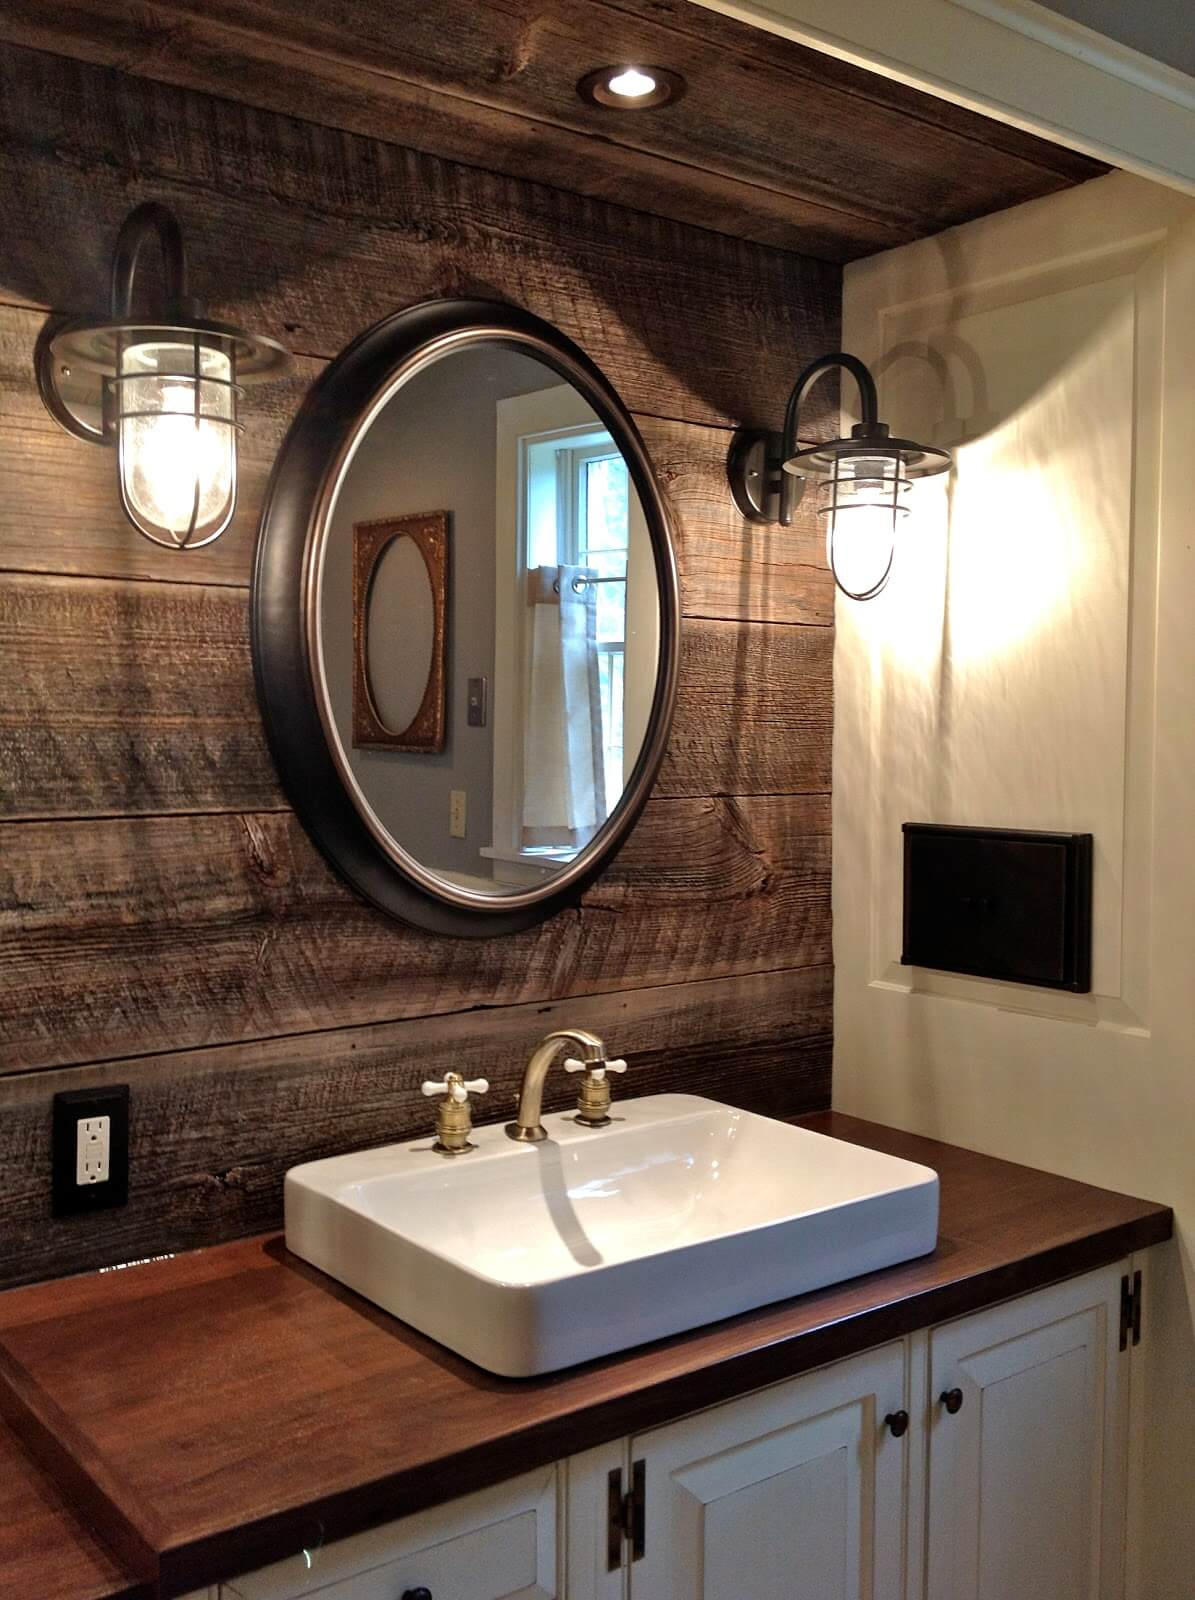 Superieur 1. Statement Mirror And Rustic Feature Wall